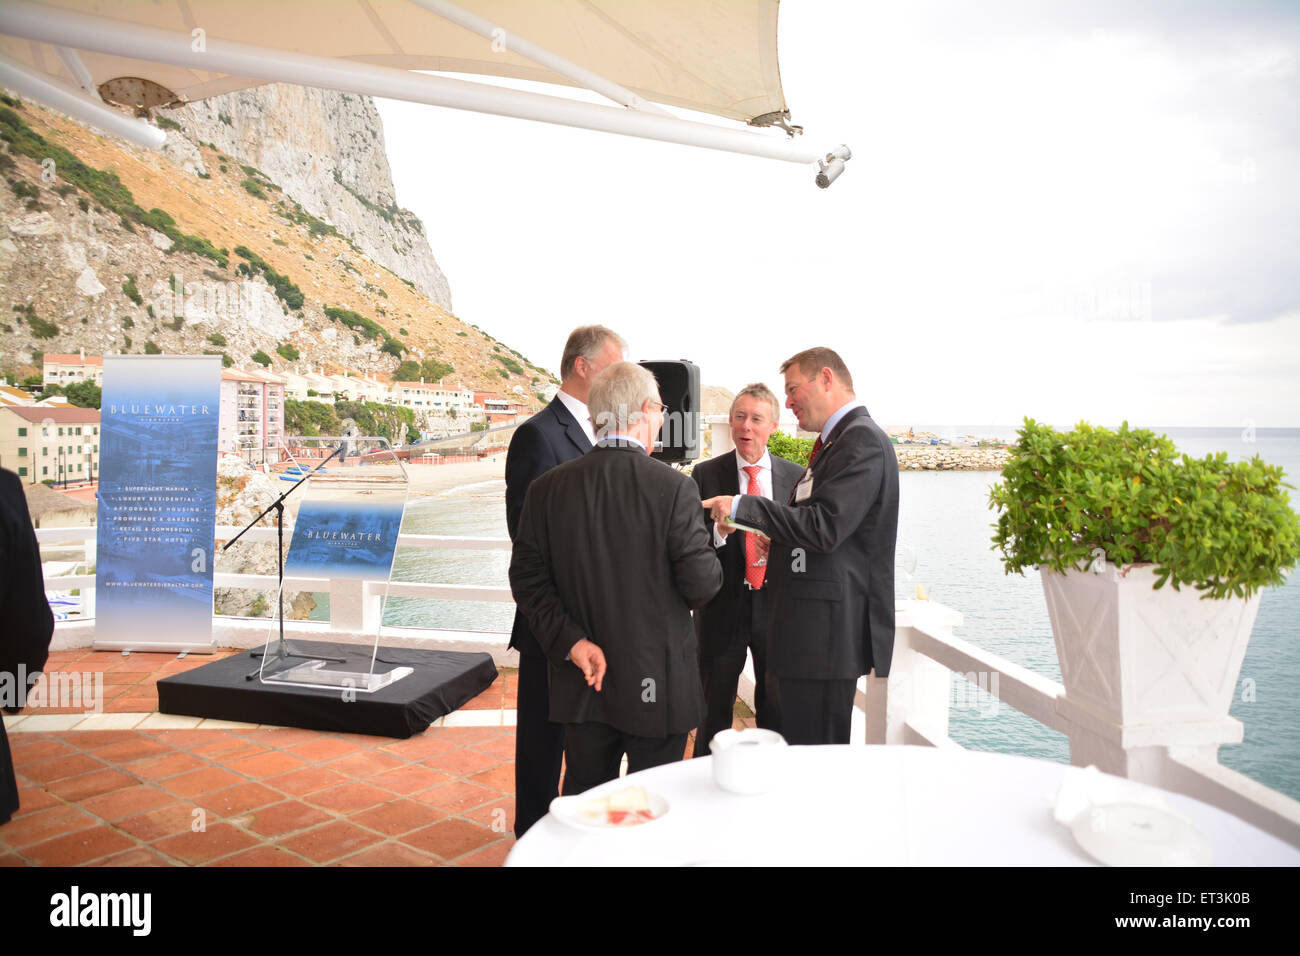 Gibraltar - 11th June 2015 - In a press conference at the Caleta